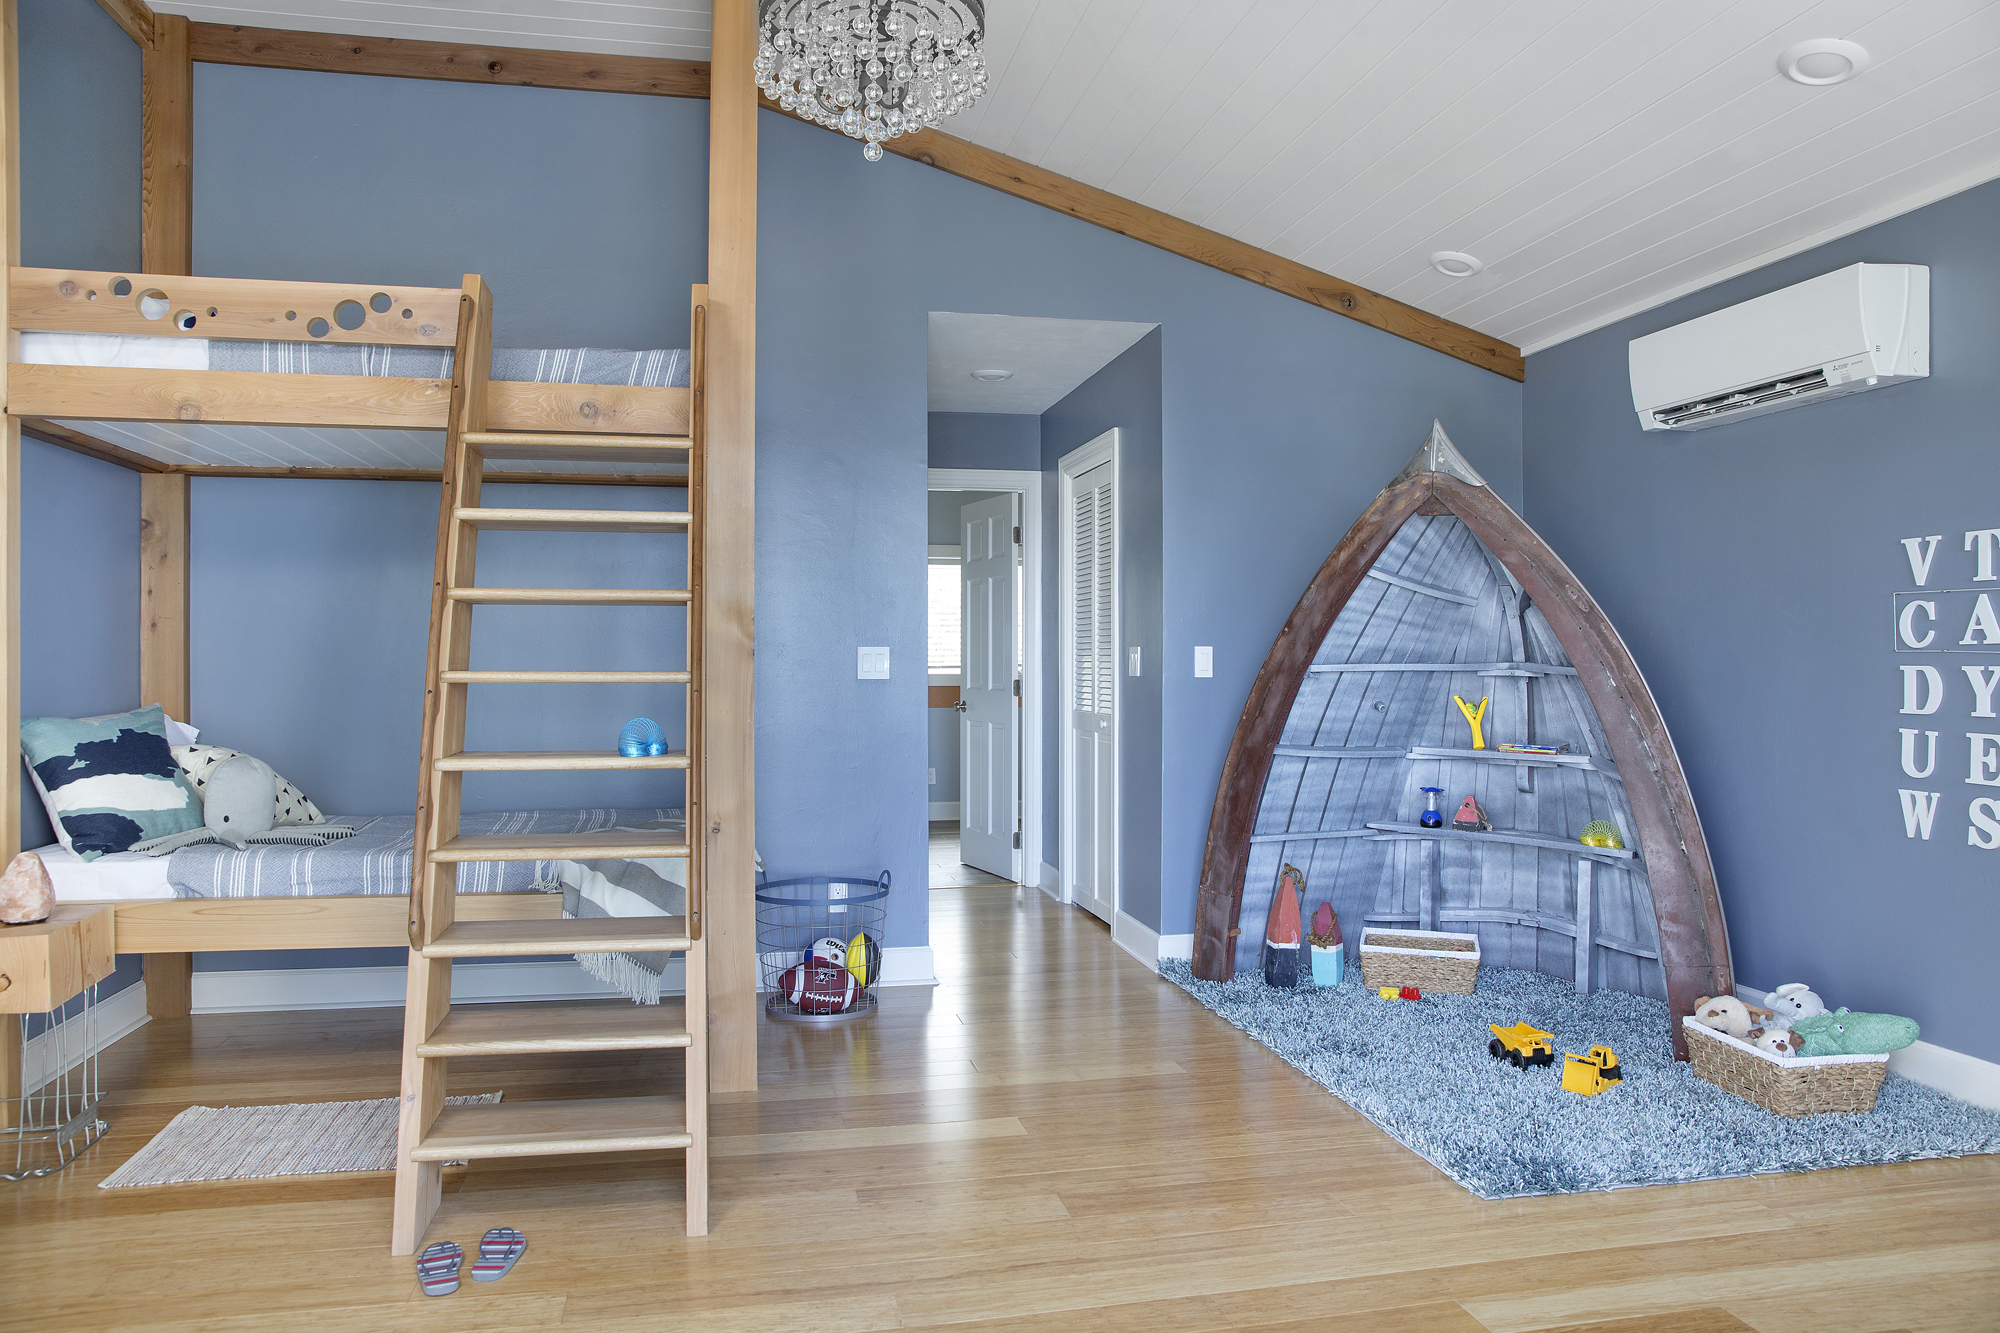 A whimsical take on a nautical theme, this cheerful kids' room mixes ocean-blue walls with boat hull shelves and a ship-style V-groove ceiling.